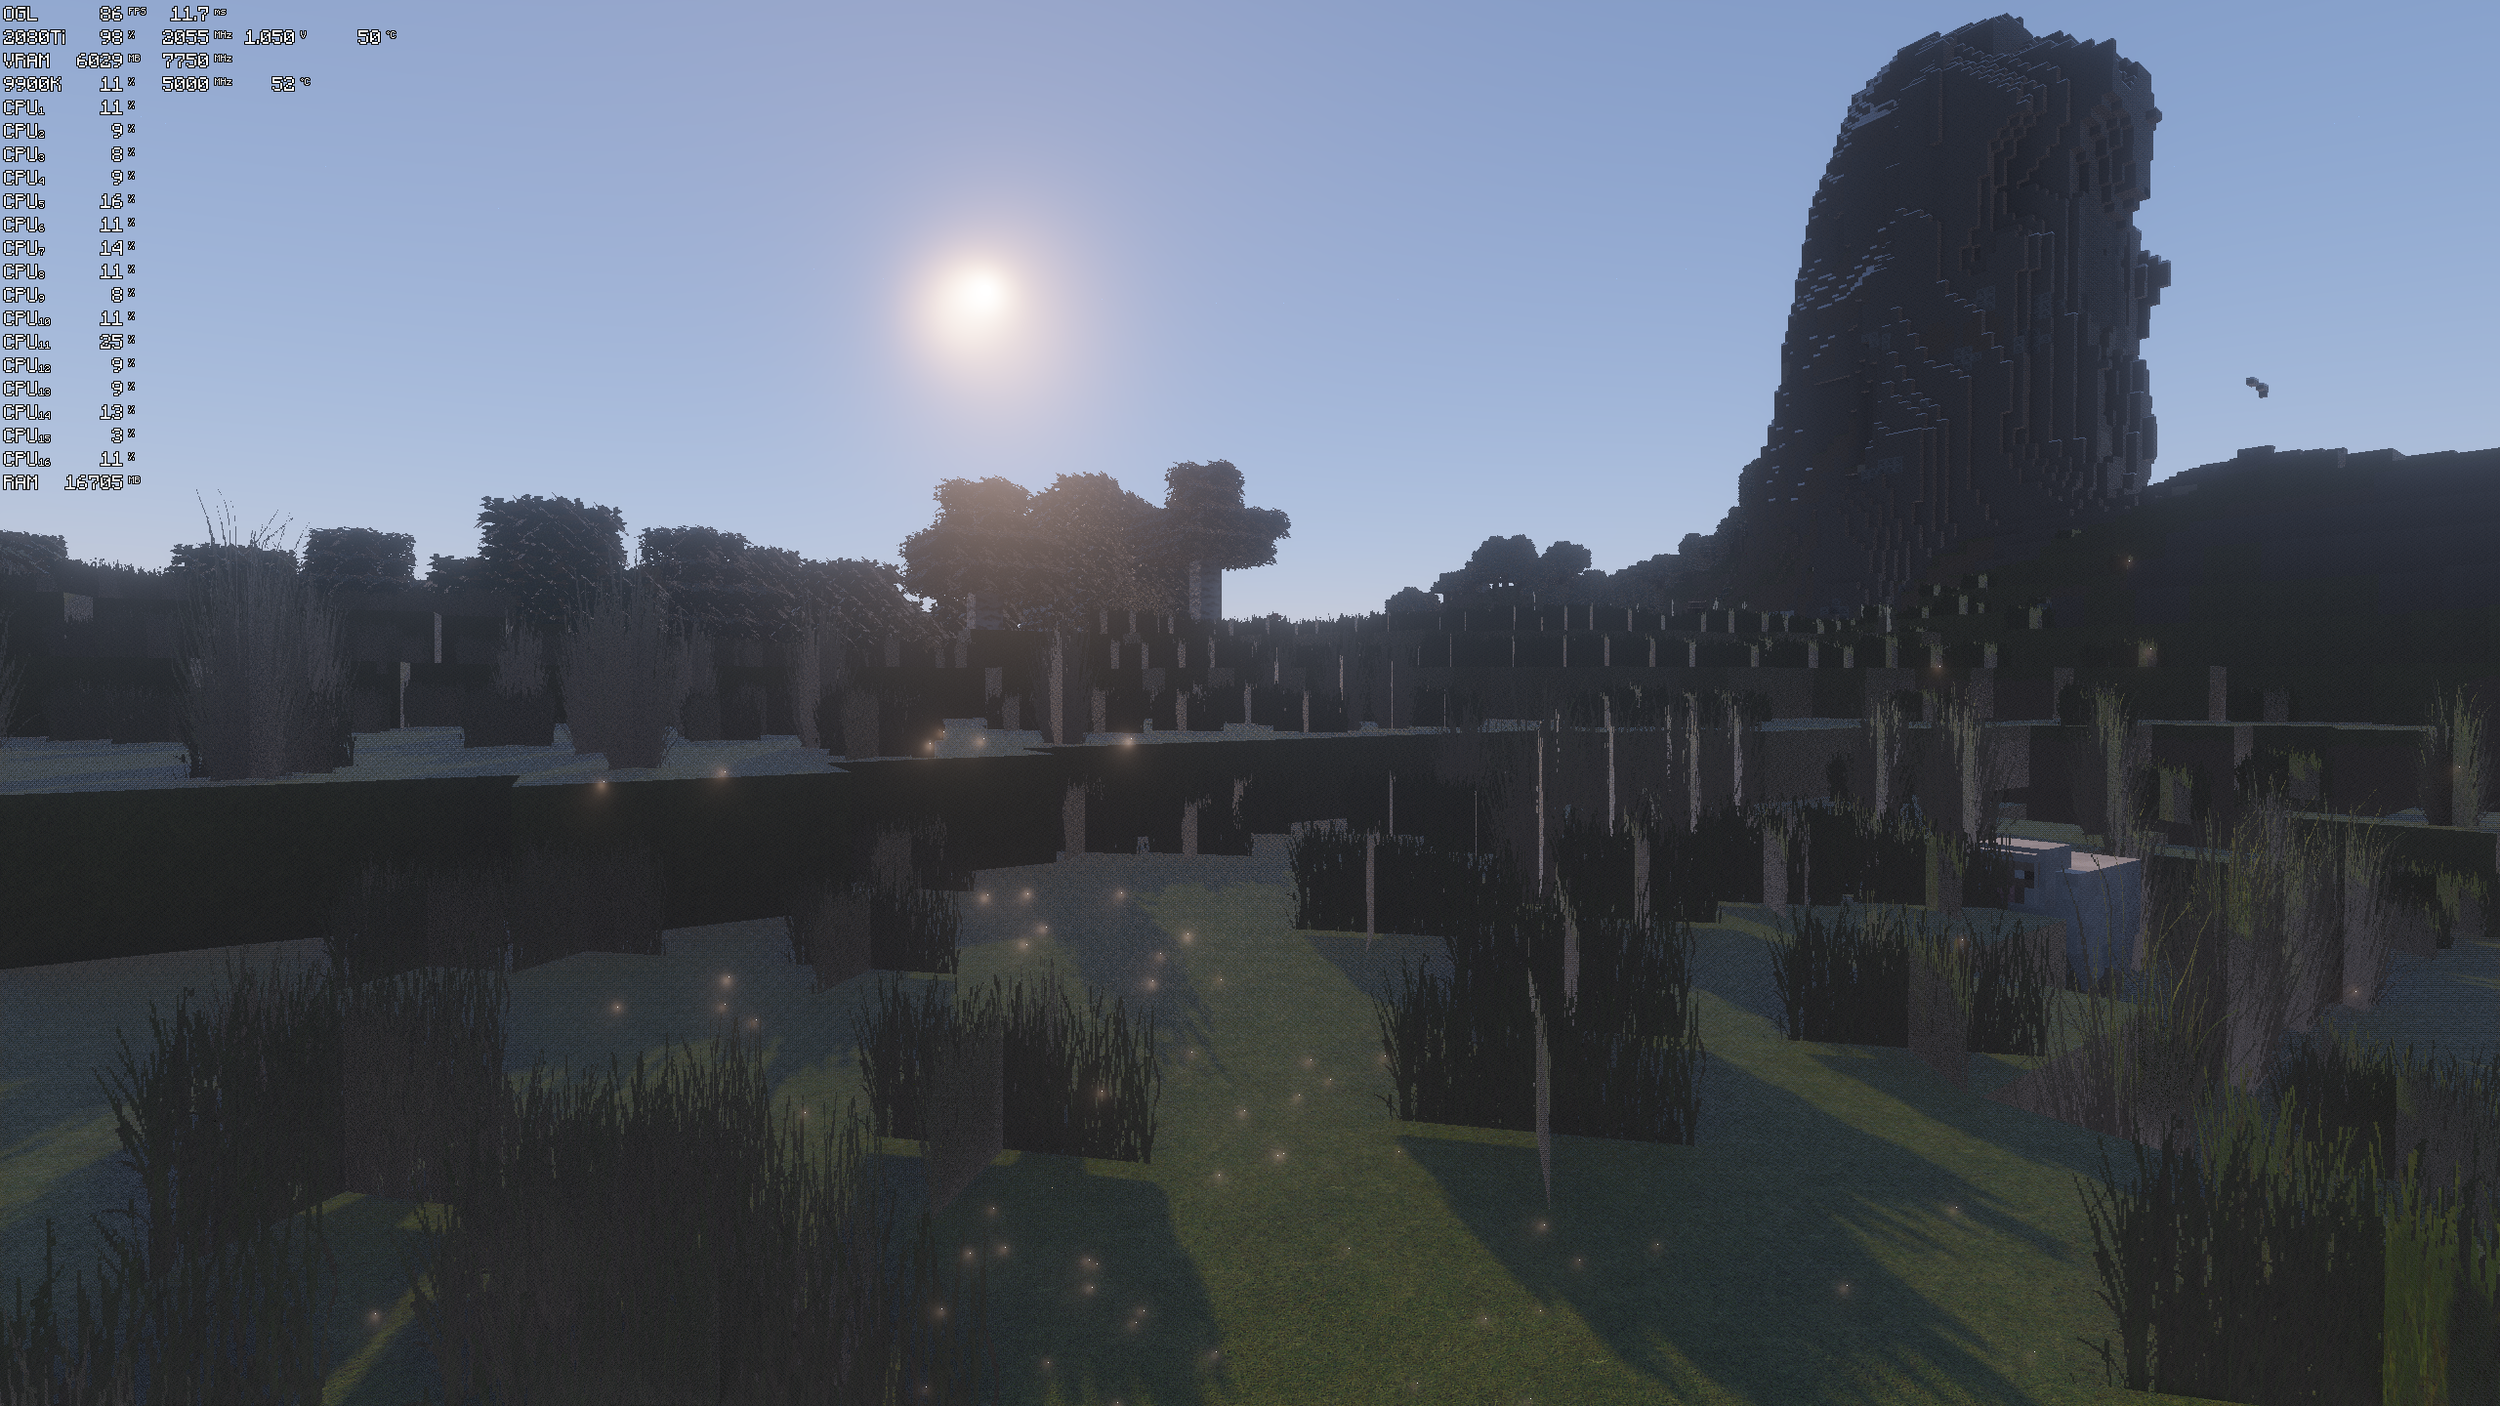 2.0 Alpha, also after ~5 months of development (click to enlarge, FPS in top left)